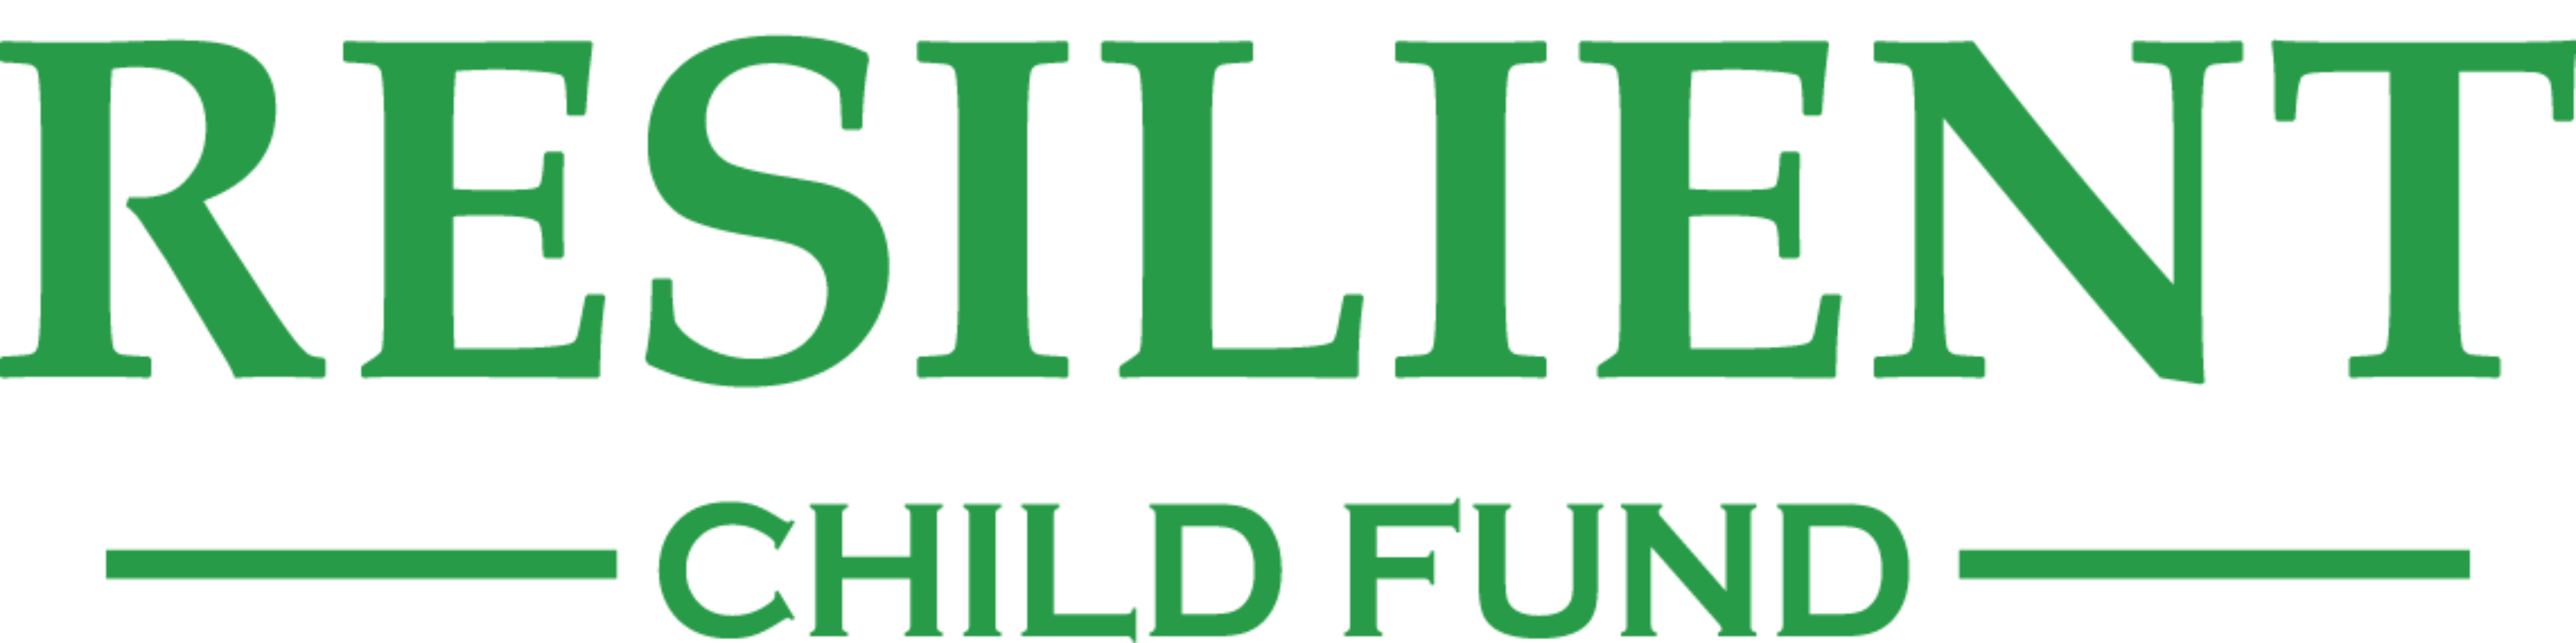 Resilient Child Fund